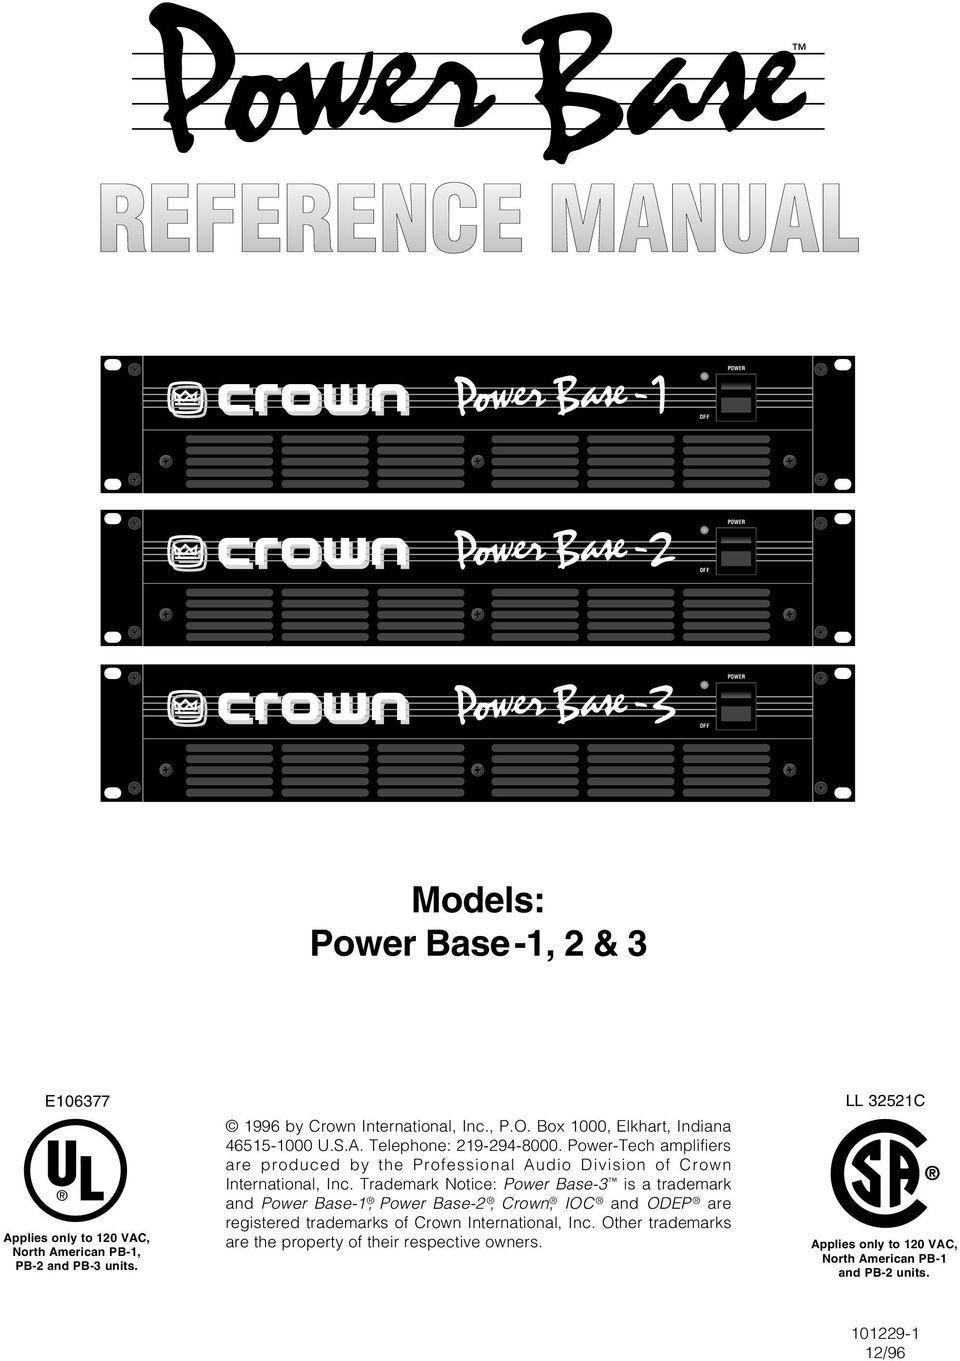 Power-Tech amplifiers are produced by the Professional Audio Division of Crown International, Inc.